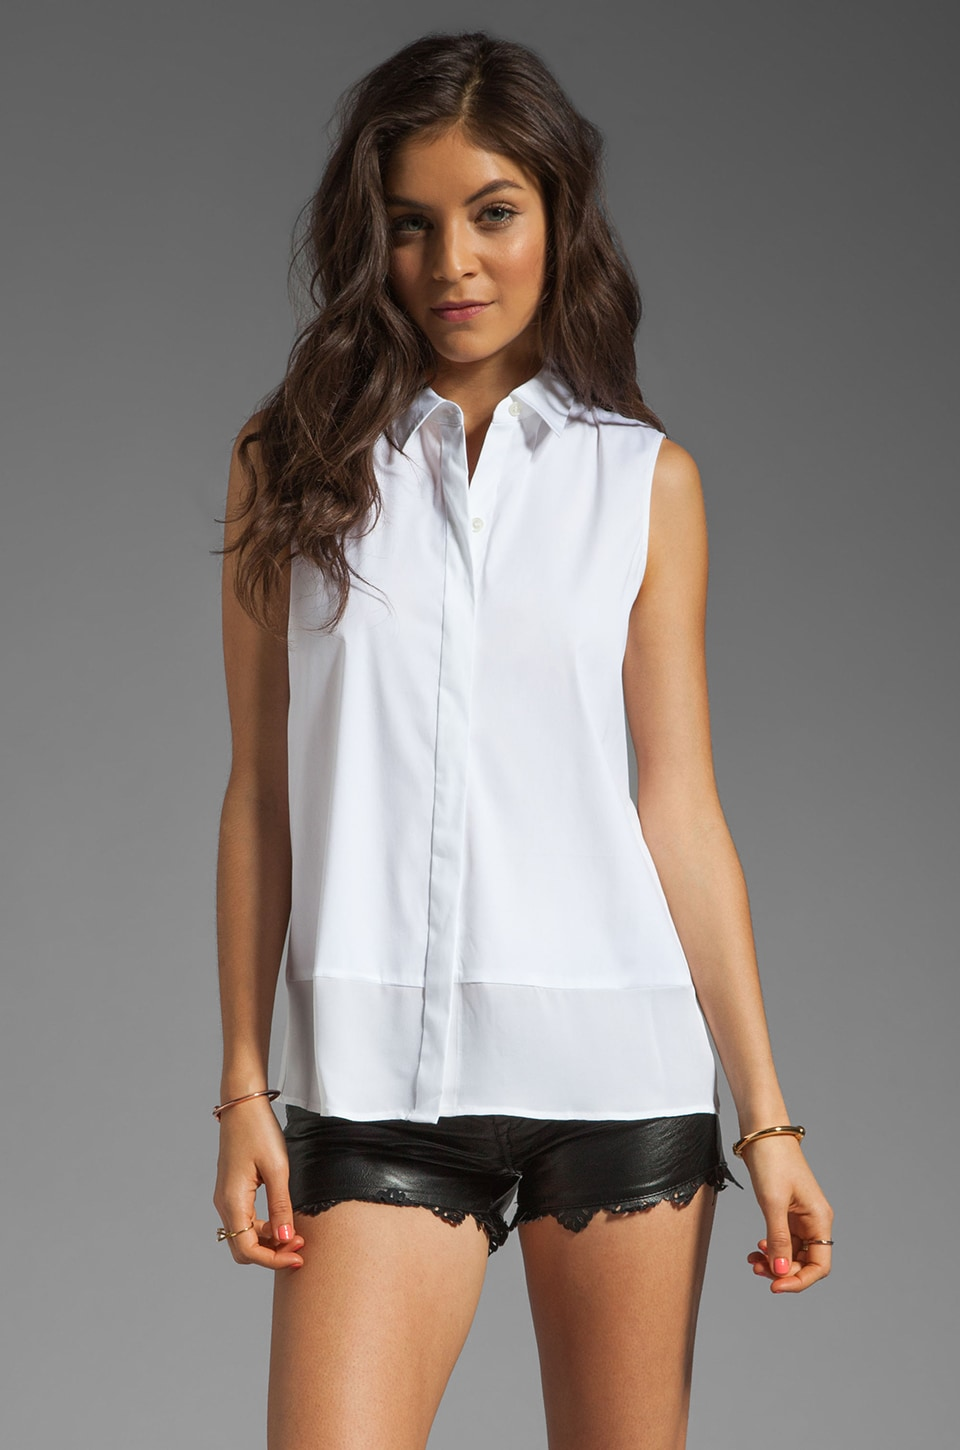 Theory Luxe Marlee Double GGT Combo Top in White